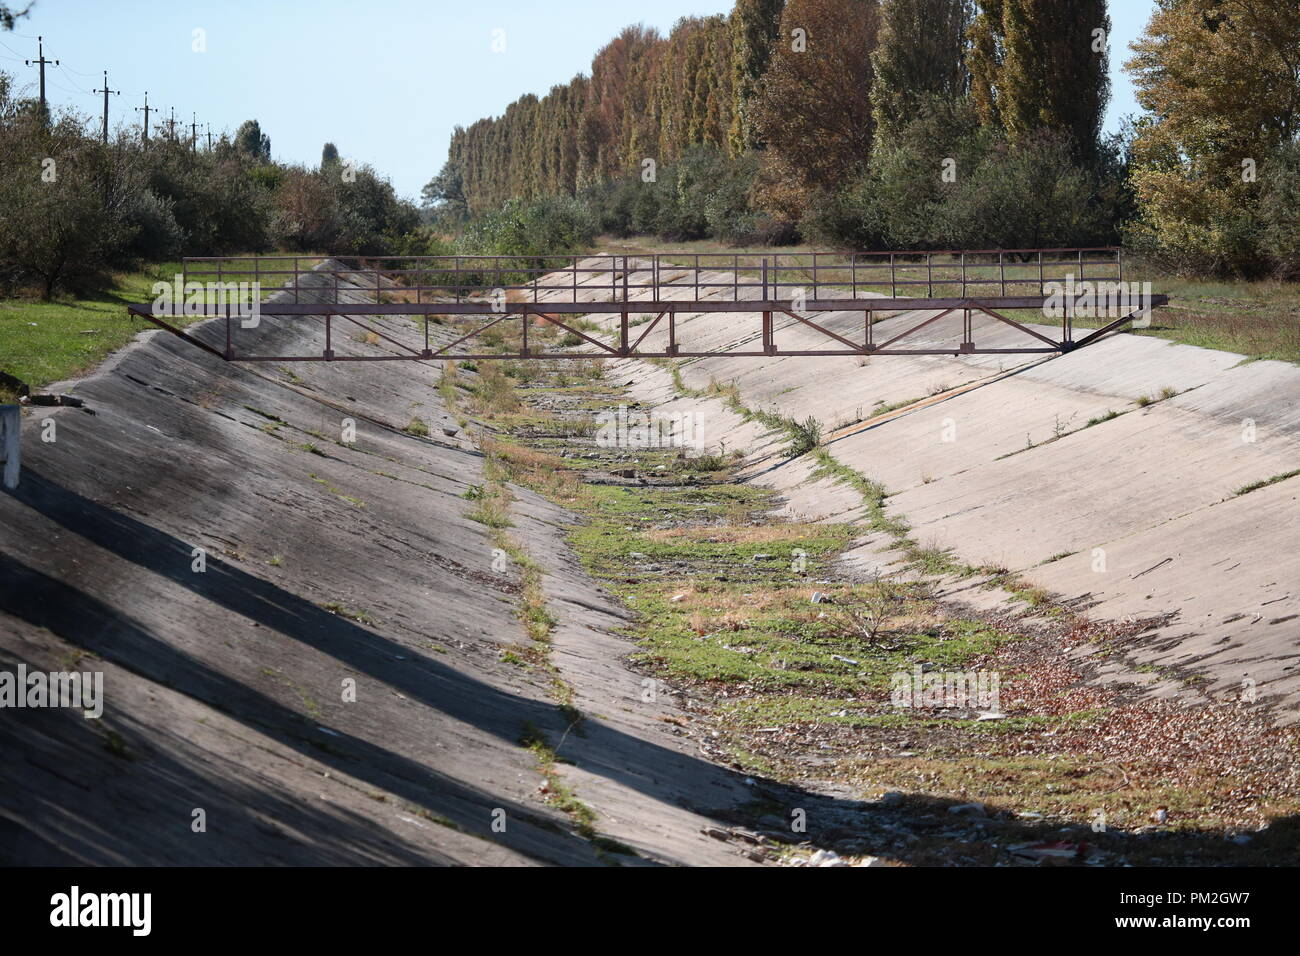 ARMYANSK, CRIMEA, RUSSIA – SEPTEMBER 17, 2018: North Crimean Canal near the town of Armyansk, north Crimea, where high concentrations of sulphur dioxide have been confirmed following a sudden release of vapours of a toxic agent at the Krymsky Titan plant on the night between 23 and 24 August 2018; operations at Krymsky Titan, manufacturer of titanium dioxide pigment owned by Titanovye Investitsii, have been halted. Sergei Malgavko/TASS - Stock Image